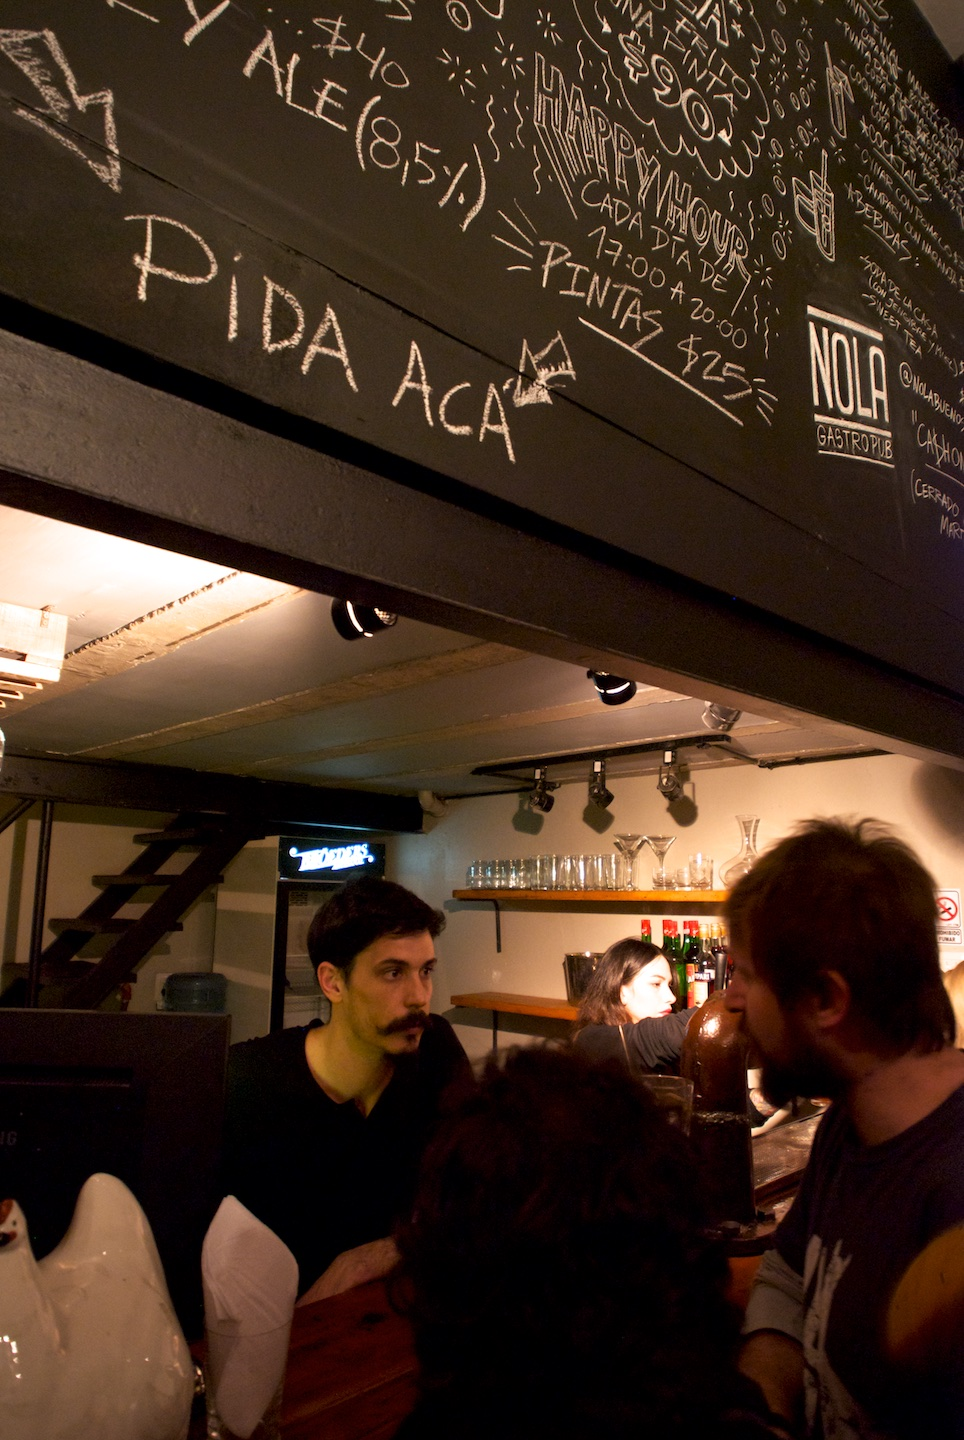 Pida aca for your craft beer and other drinks